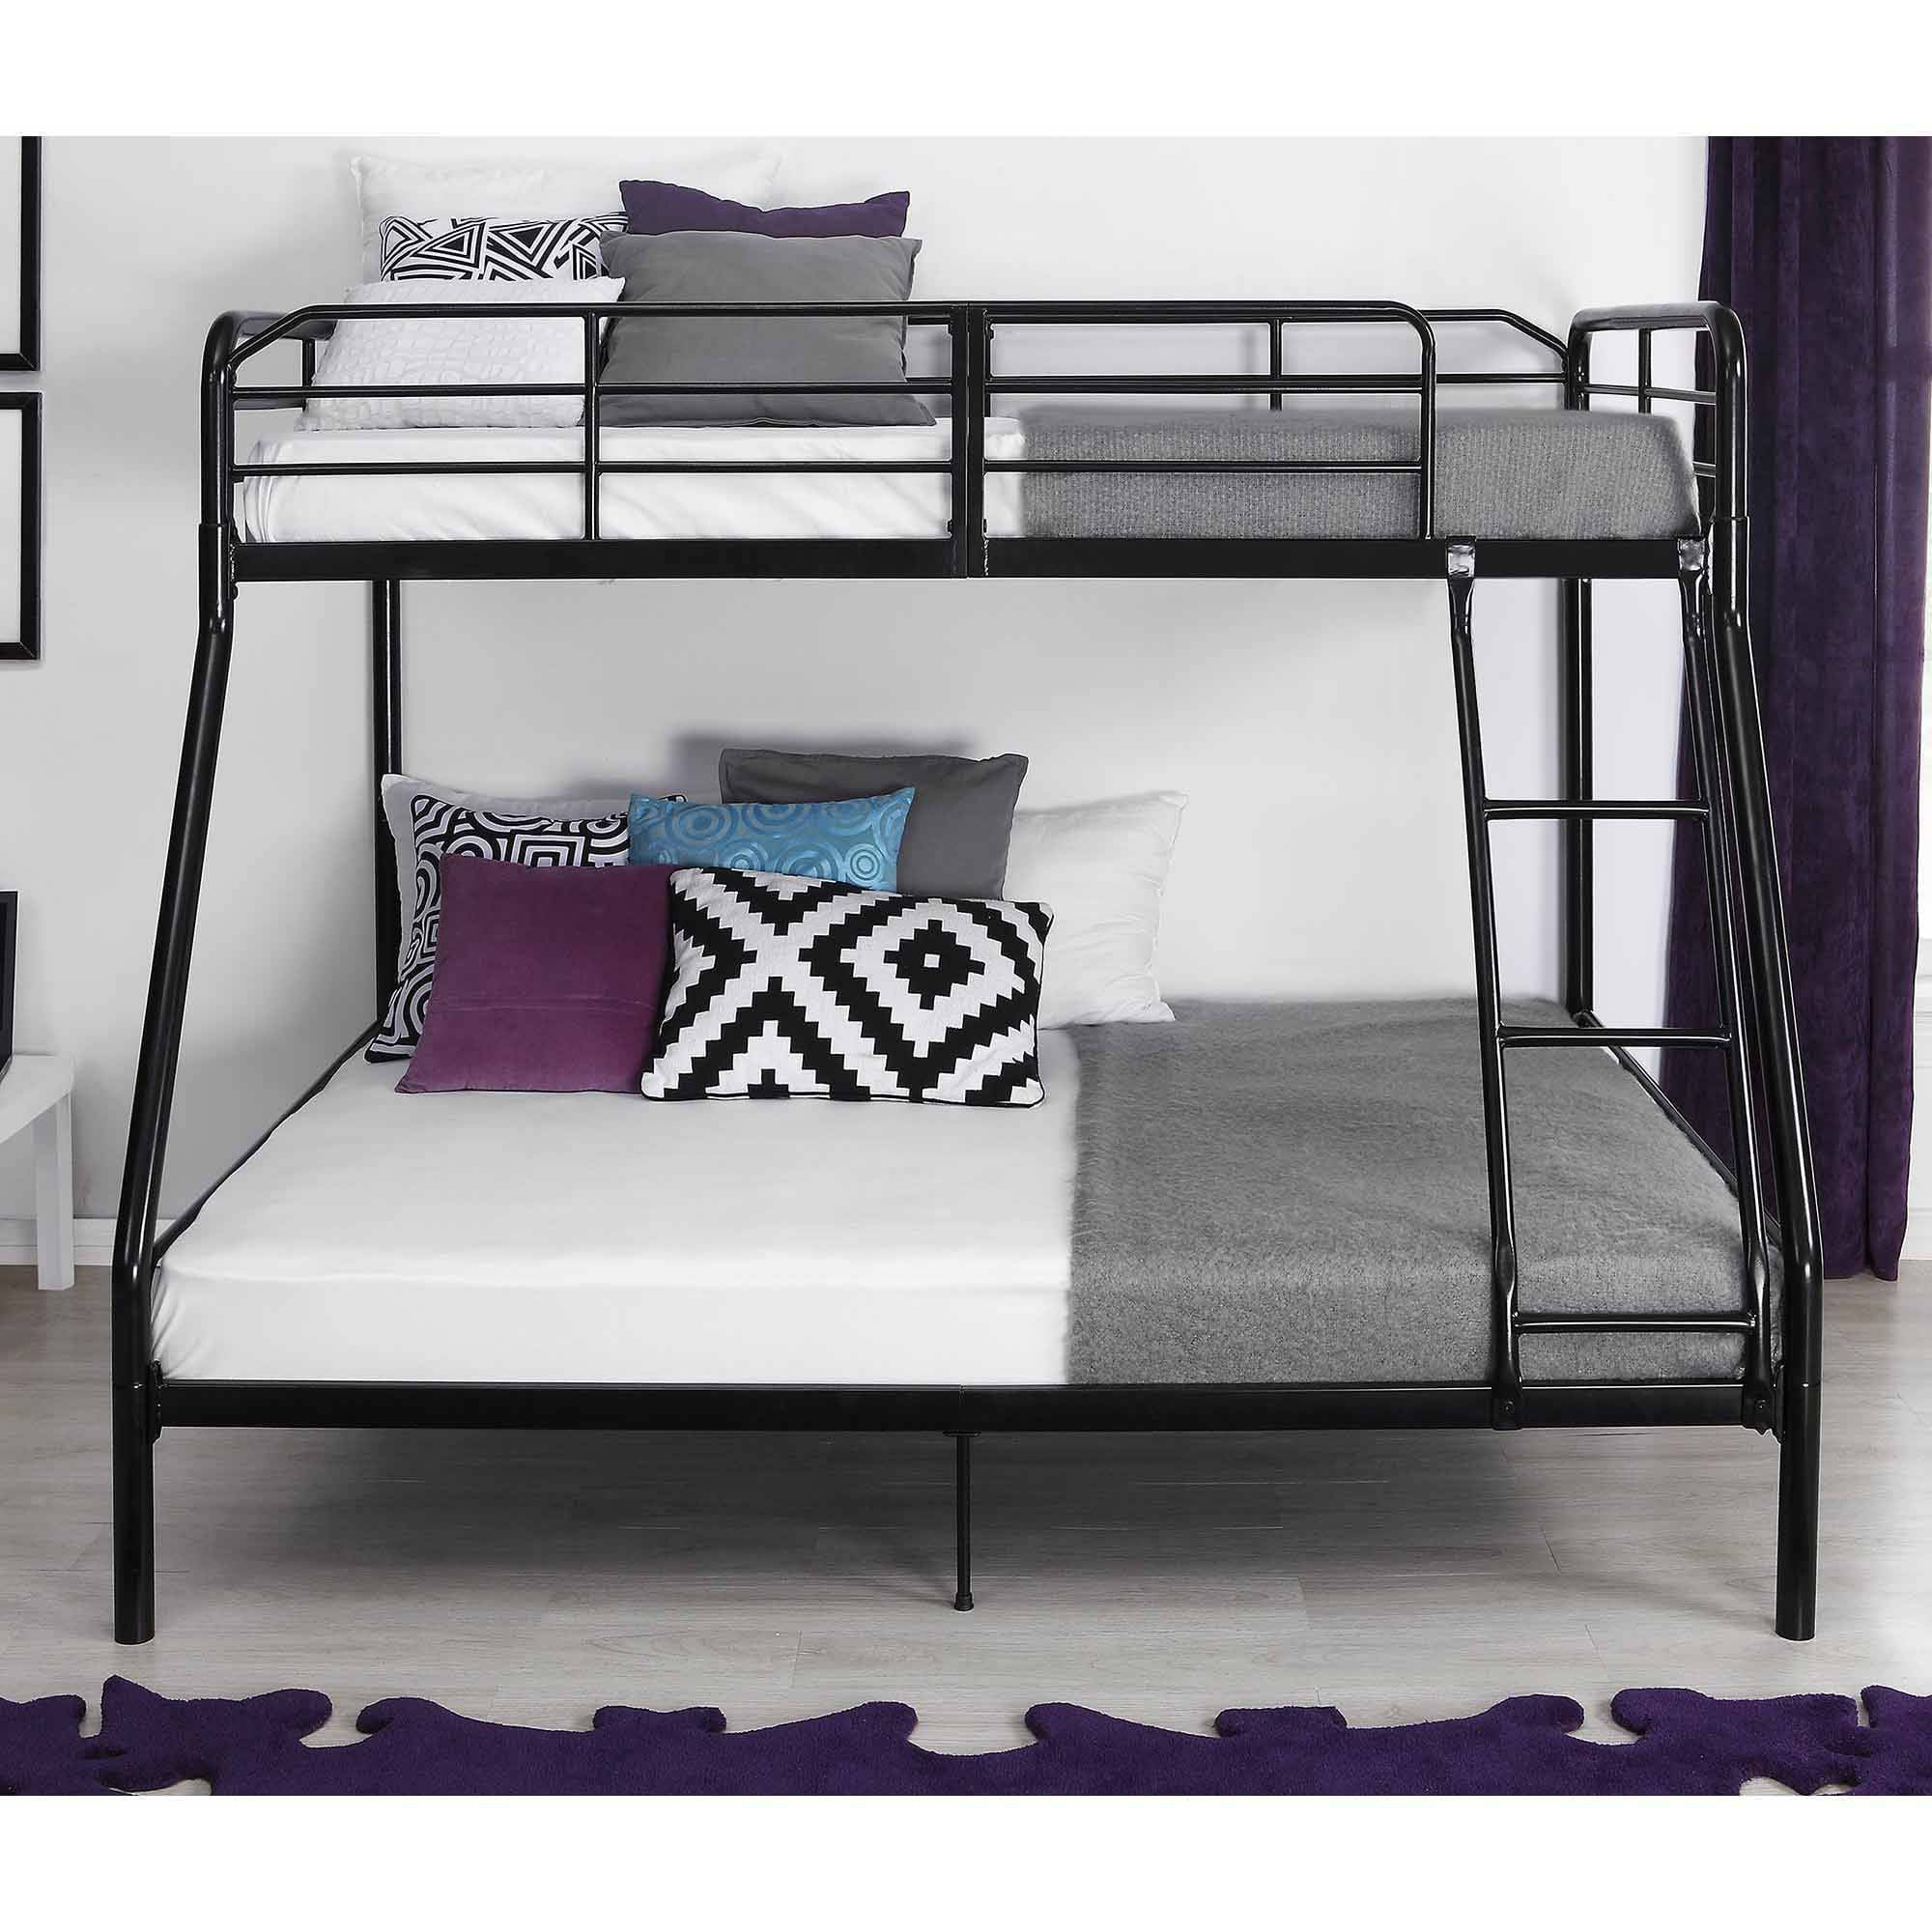 Bunk beds for adults full - Bunk Beds For Adults Full 47